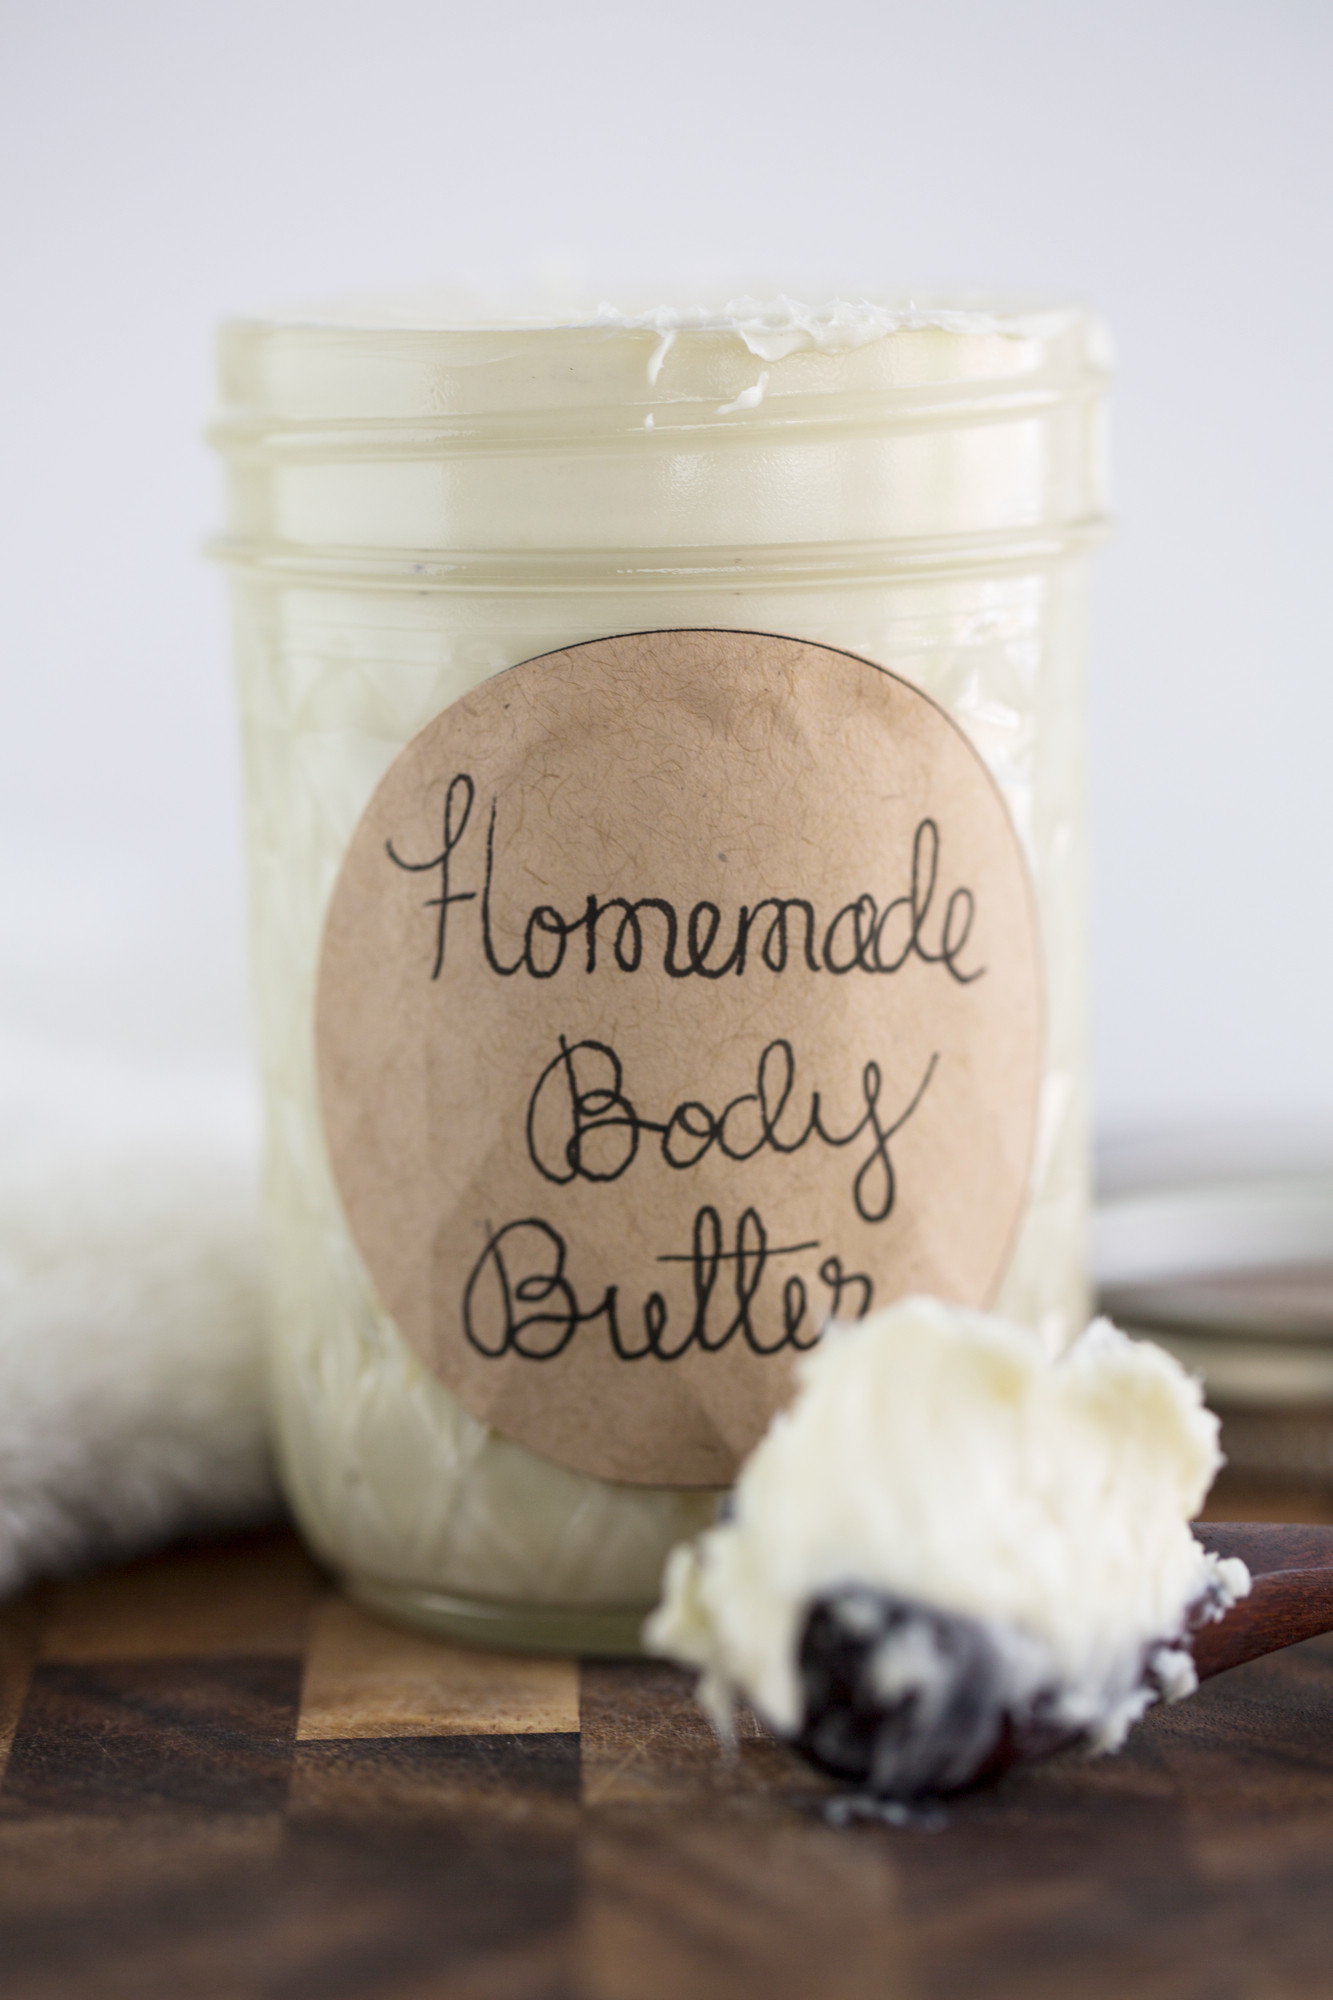 Best ideas about DIY Body Butter . Save or Pin Homemade Beauty 02 Now.